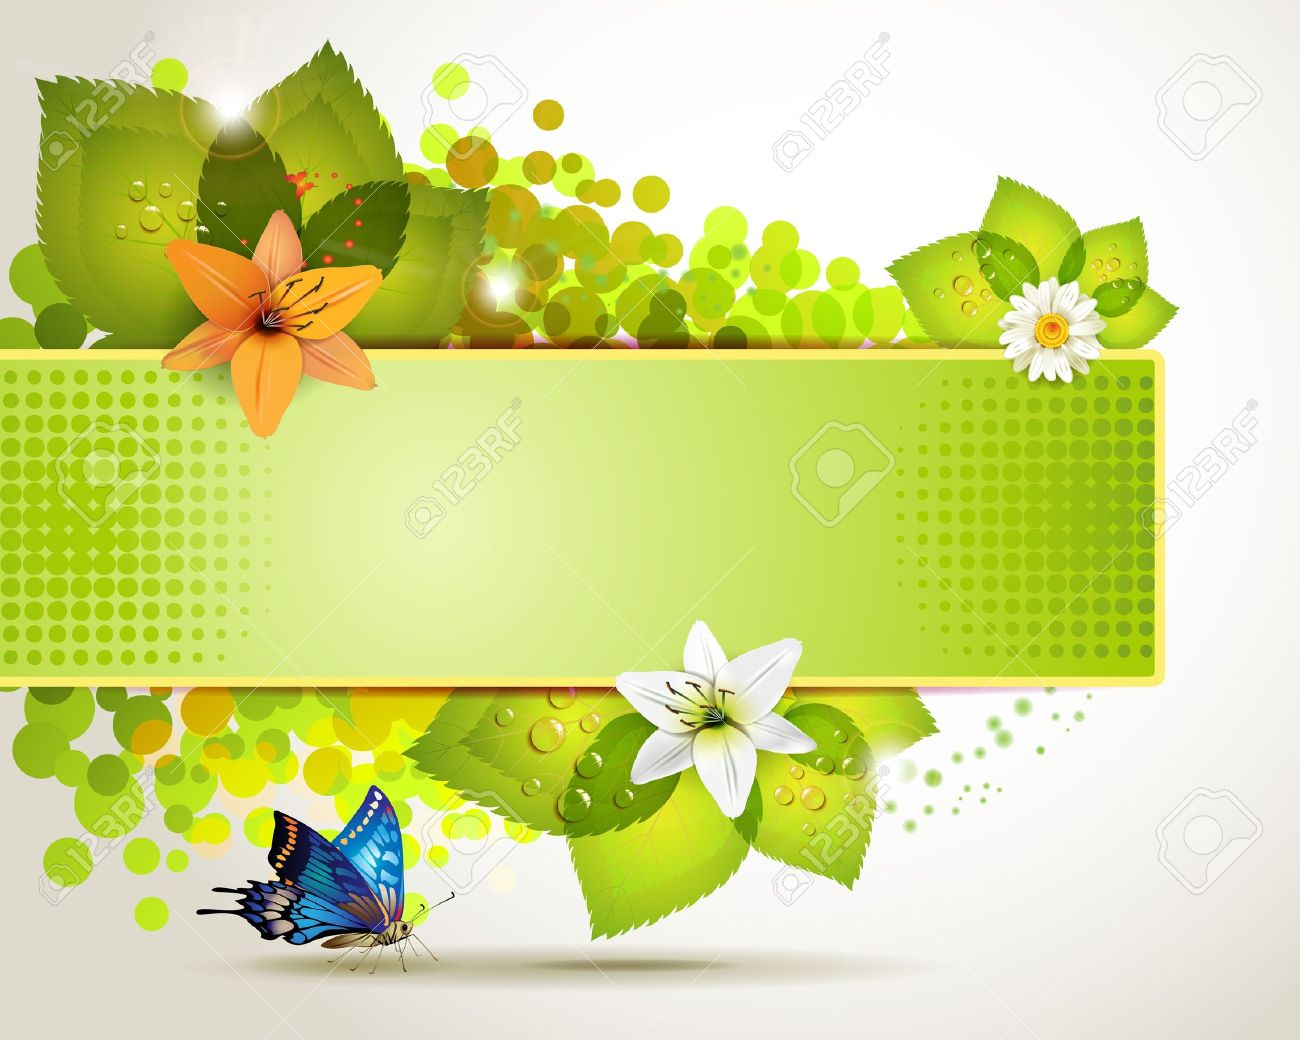 Flowers and borders picture transparent library Banner Design With Leaf, Flowers And Butterflies Royalty Free ... picture transparent library